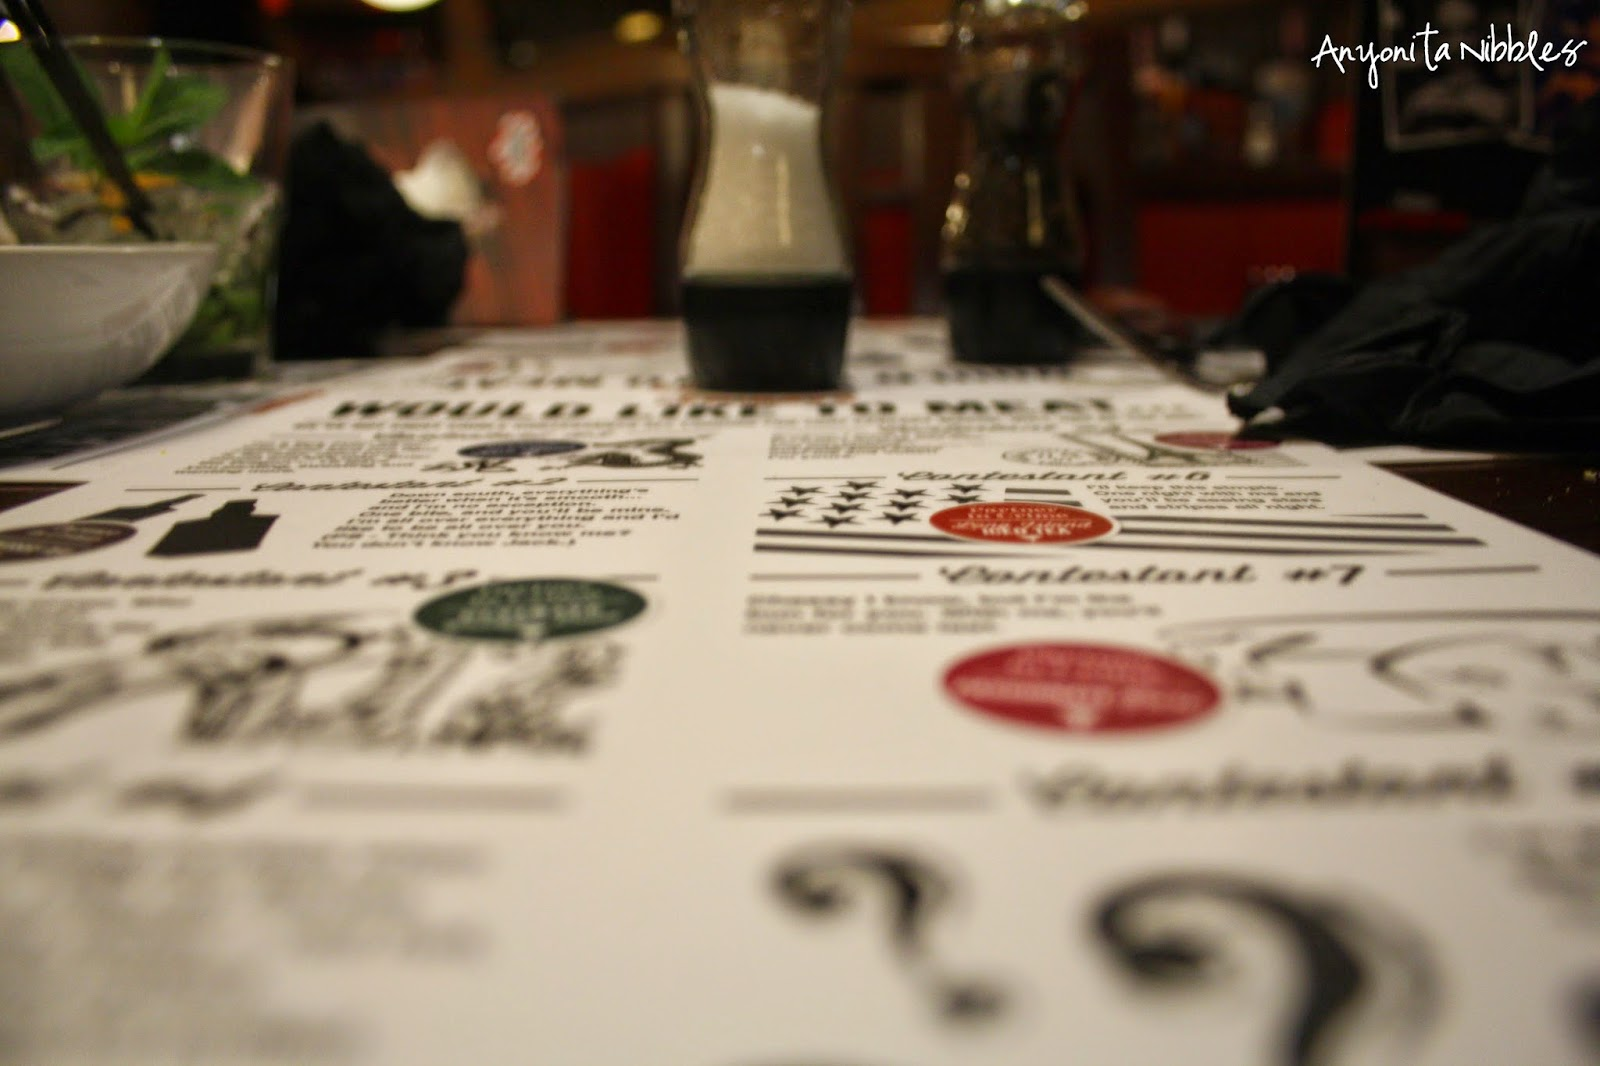 TGI Friday's Burger Blind Date Menu